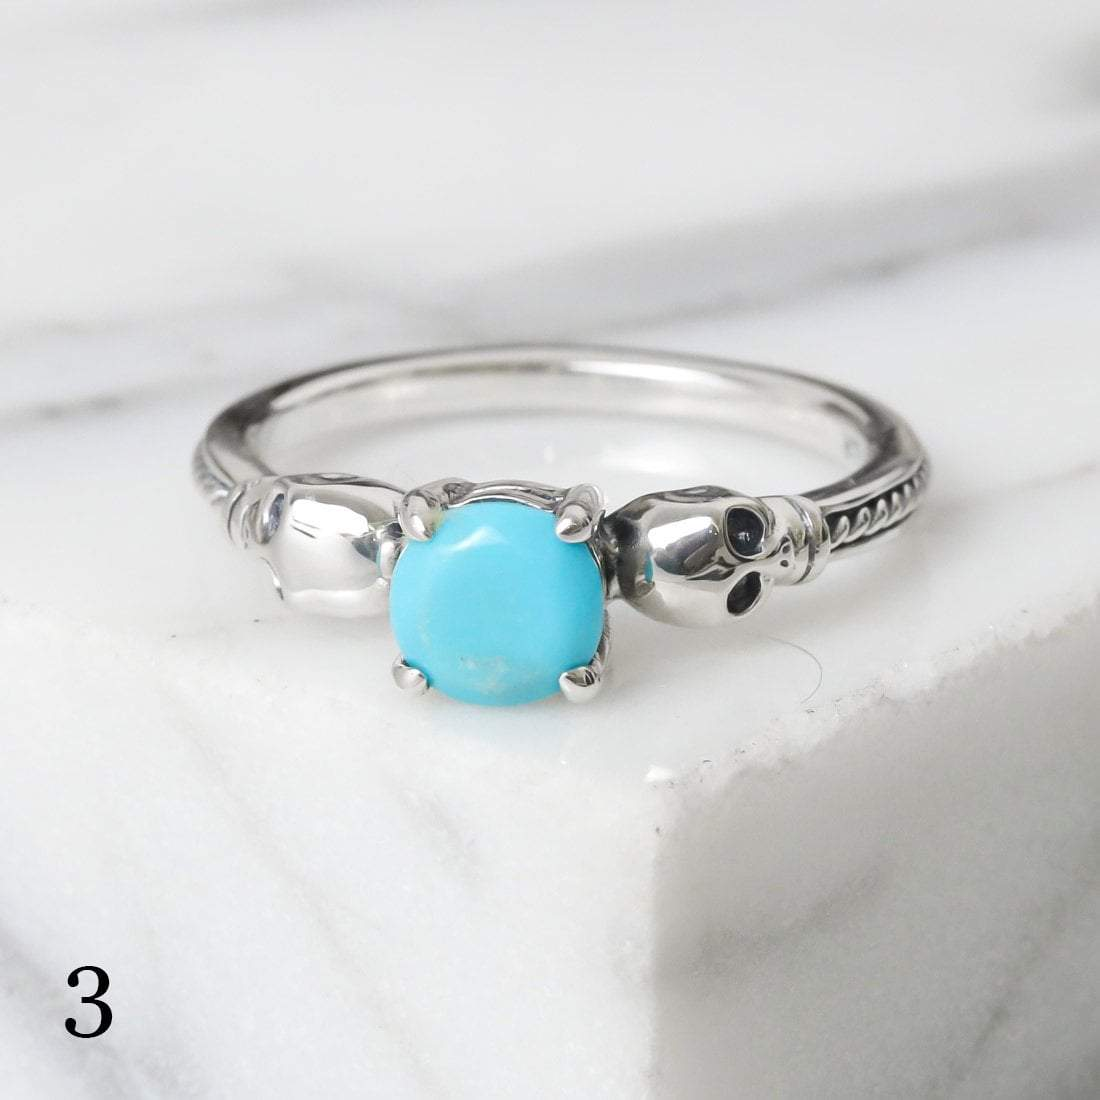 Midsummer Star Ring 3 - Turquoise / 5 12 Days of Festivities - Sample Sale 1